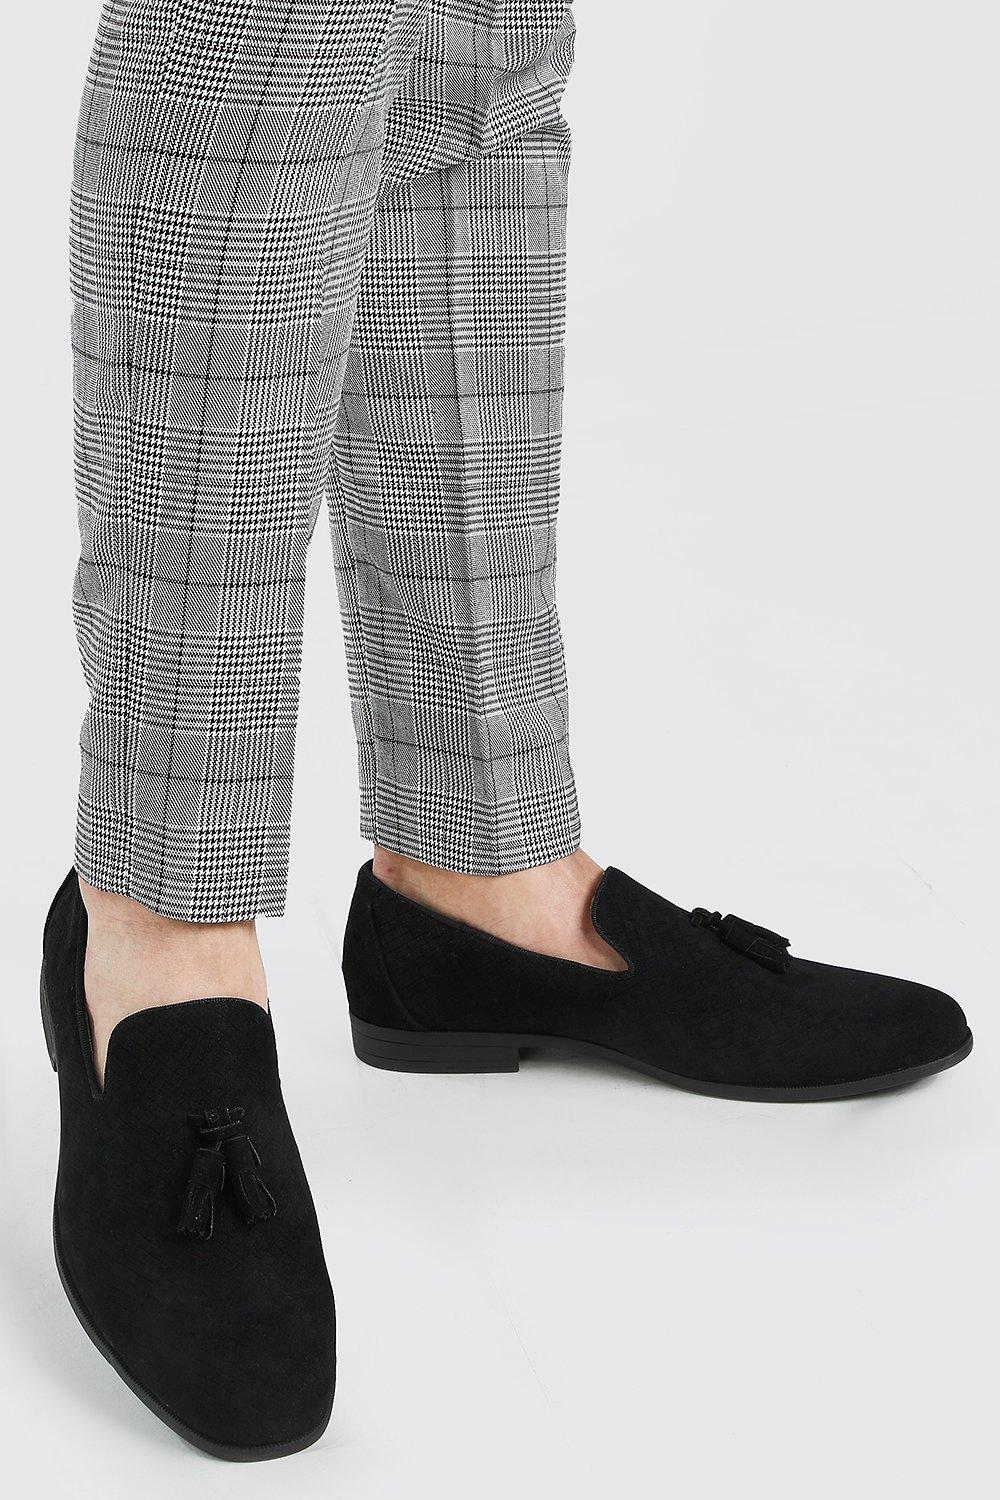 Embossed Weave Faux Suede Tassel Loafer